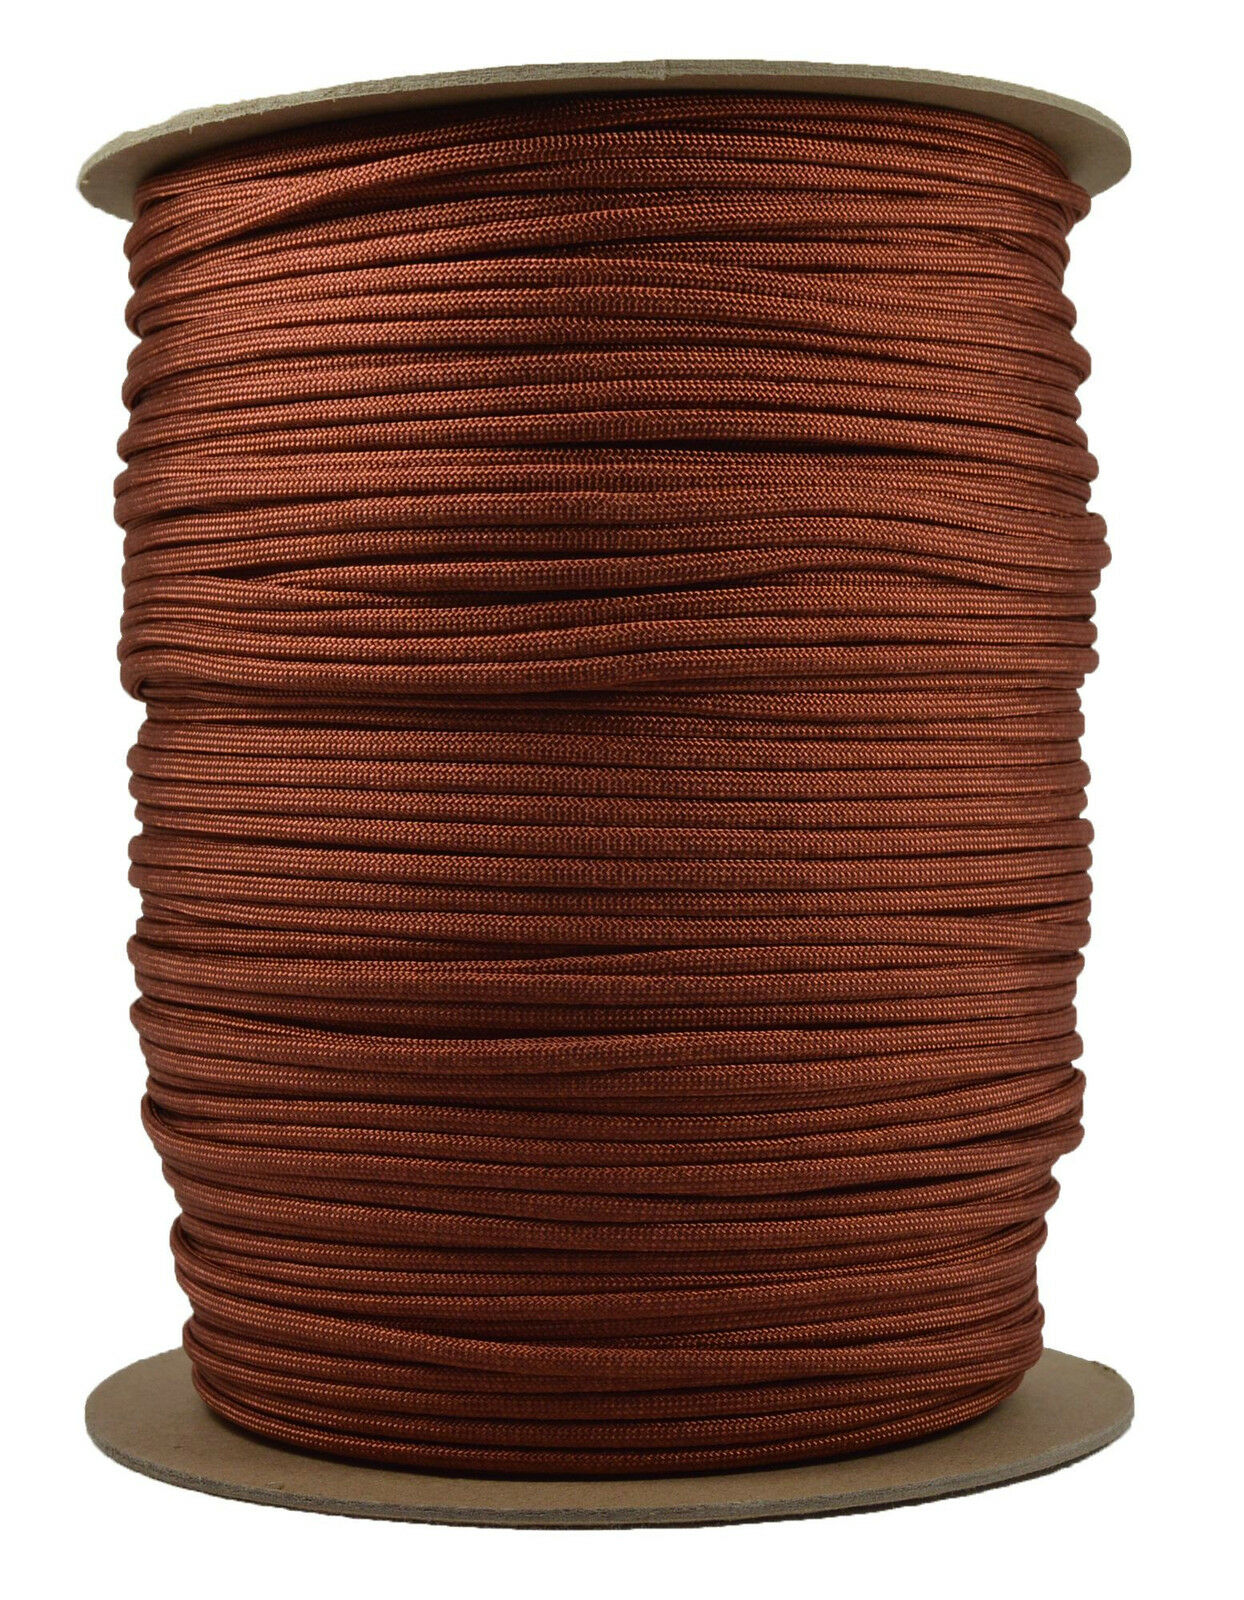 Rust  550 Paracord Rope 7 strand Parachute Cord  1000 Foot Spool